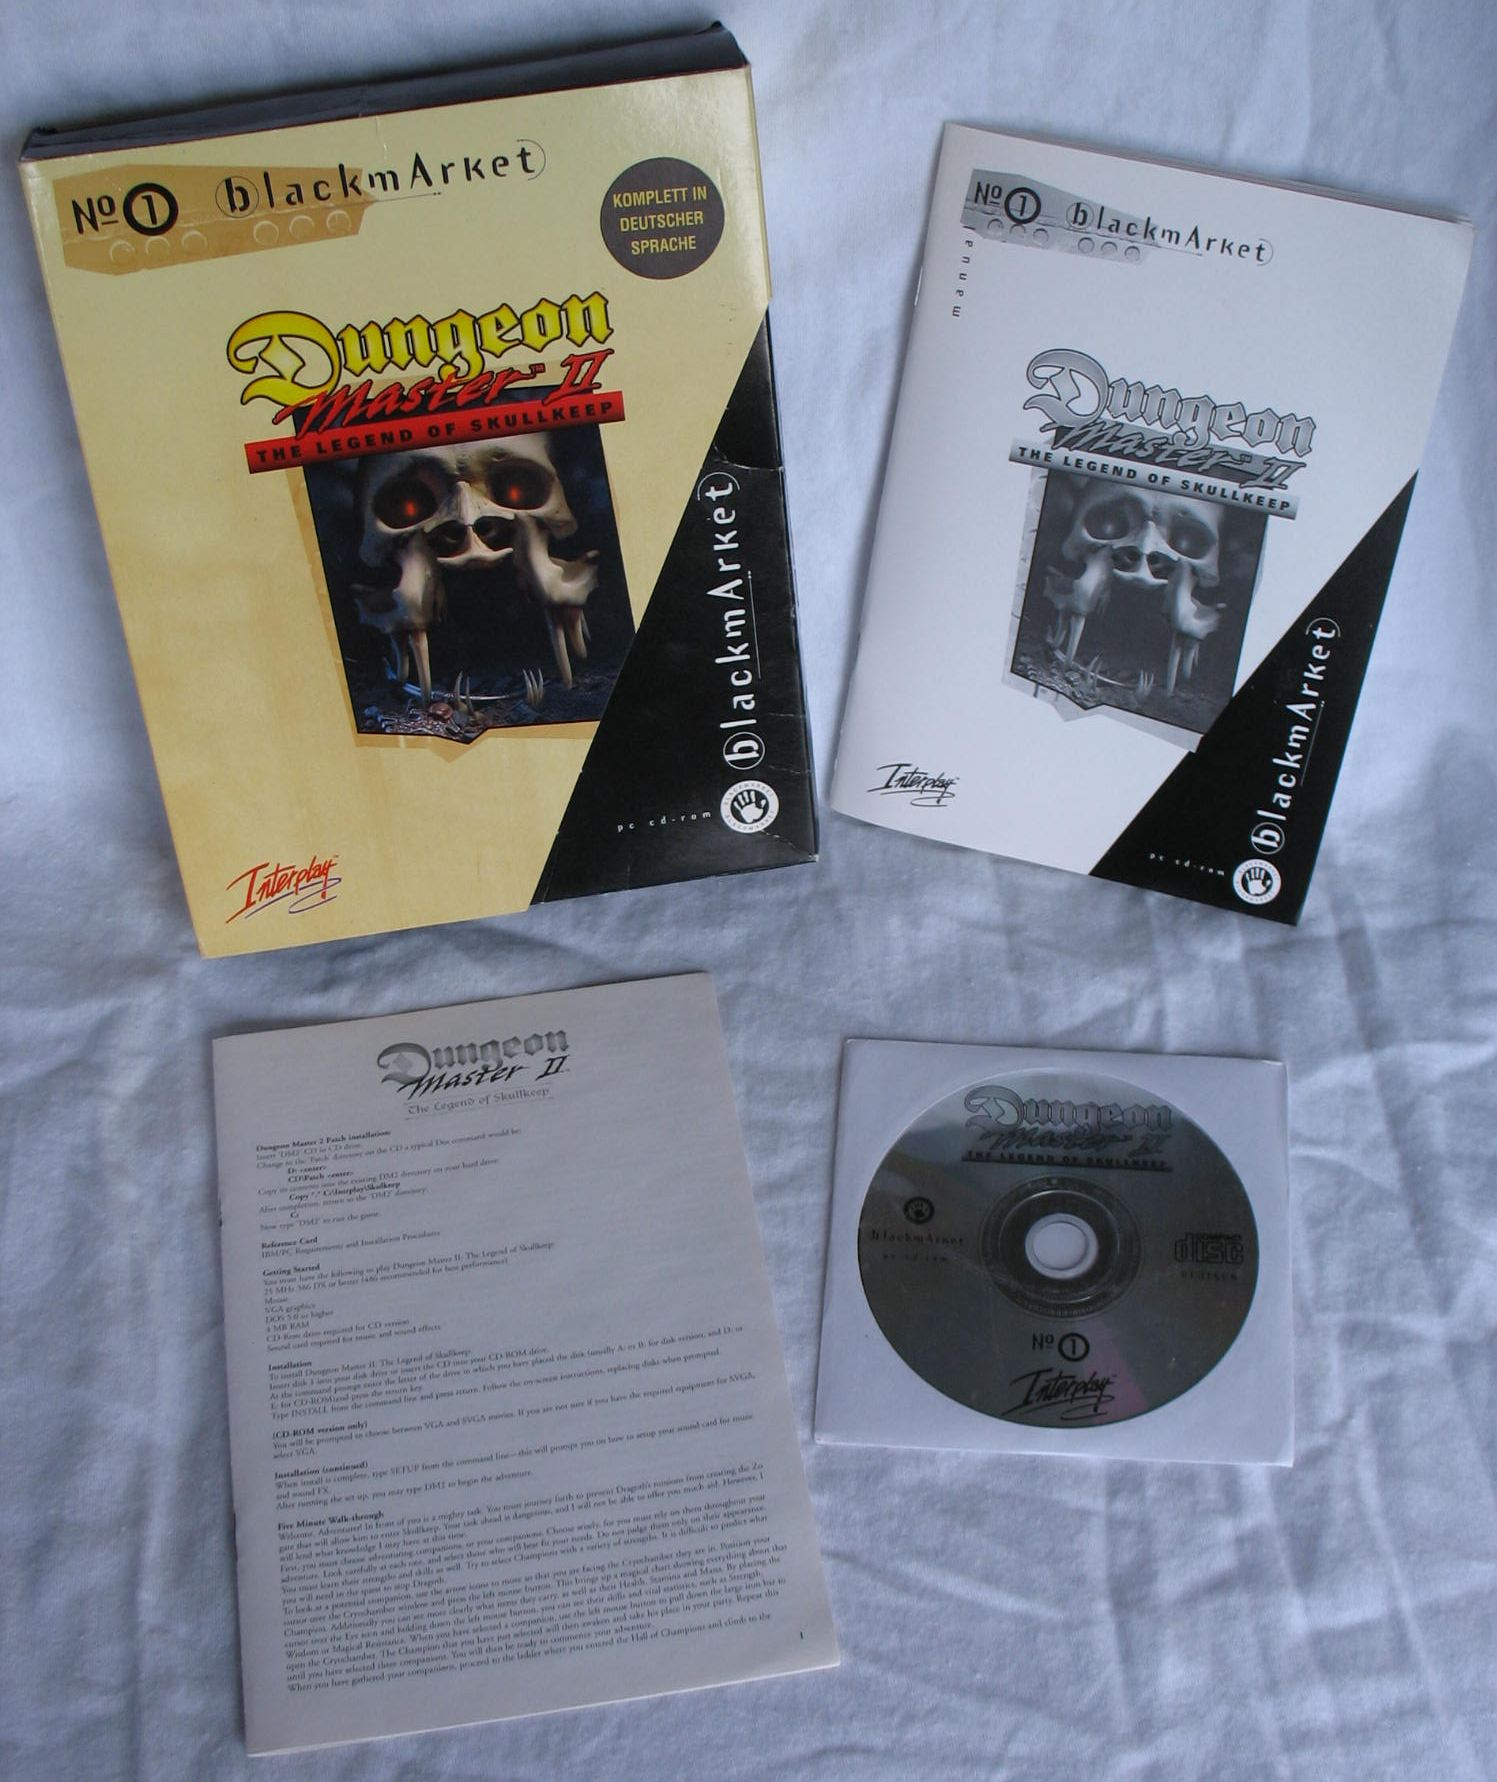 Game - Dungeon Master II - DE - PC - Blackmarket With Manual - All - Overview - Photo